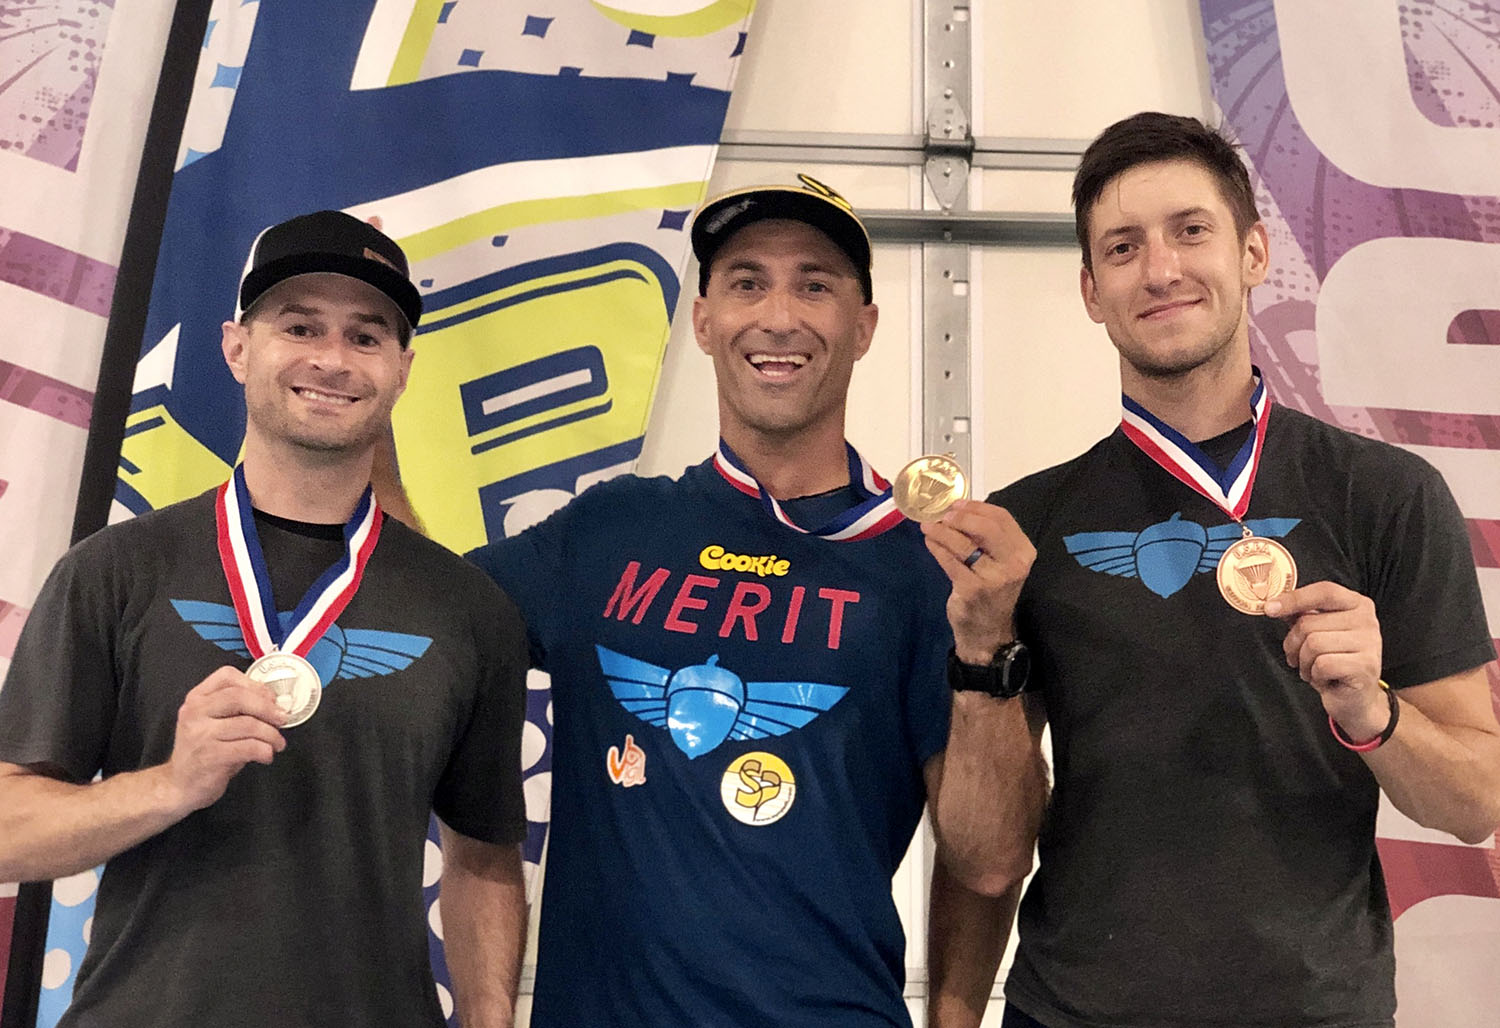 Podium at the 2019 USPA National Championships